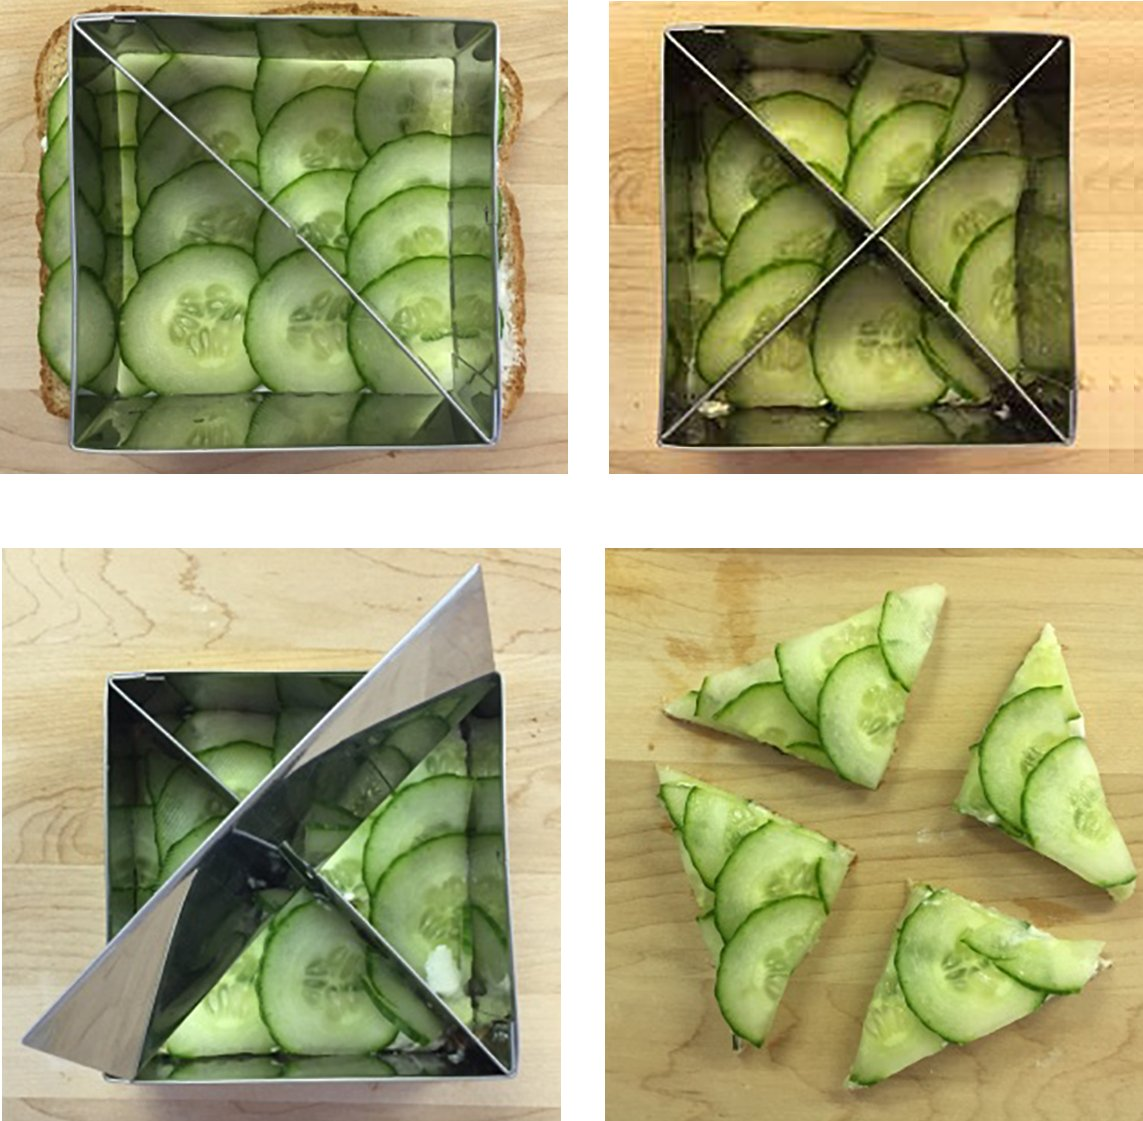 Multifunctional Pastry Cutter (2-Piece Set) - Heavy Gauge 18/10 Stainless Steel, (4-inch and 3.5-inch) with 2 Removable Blades, includes Recipes by Sweet Butter Baker (Image #6)